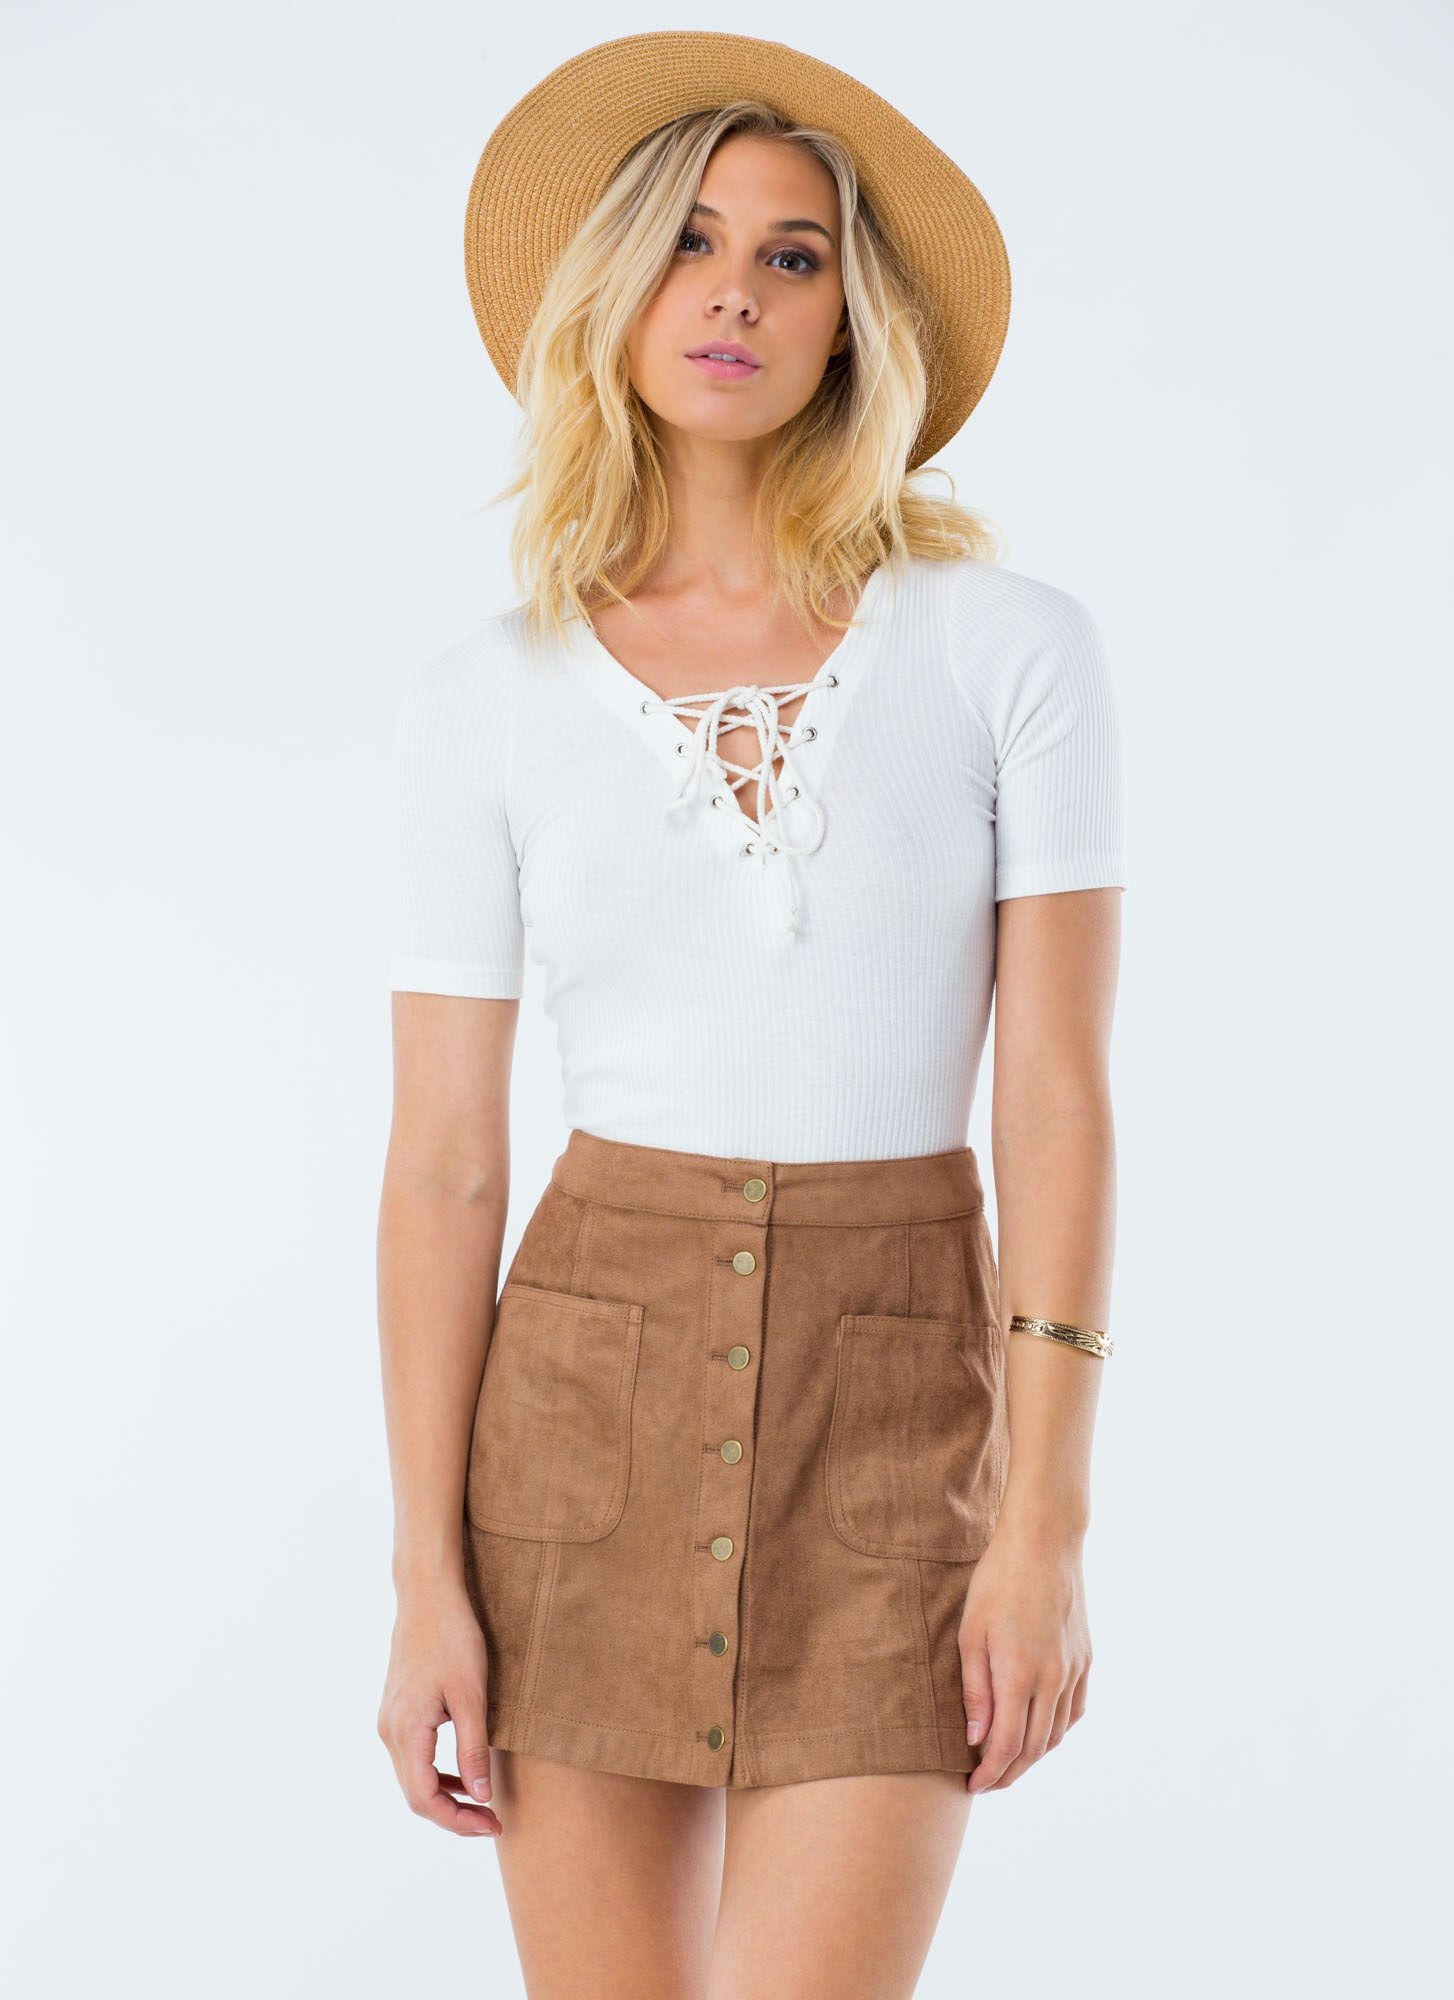 Today's Everyday Fashion: The Suede Skirt | Mini skirts, Skirts ...